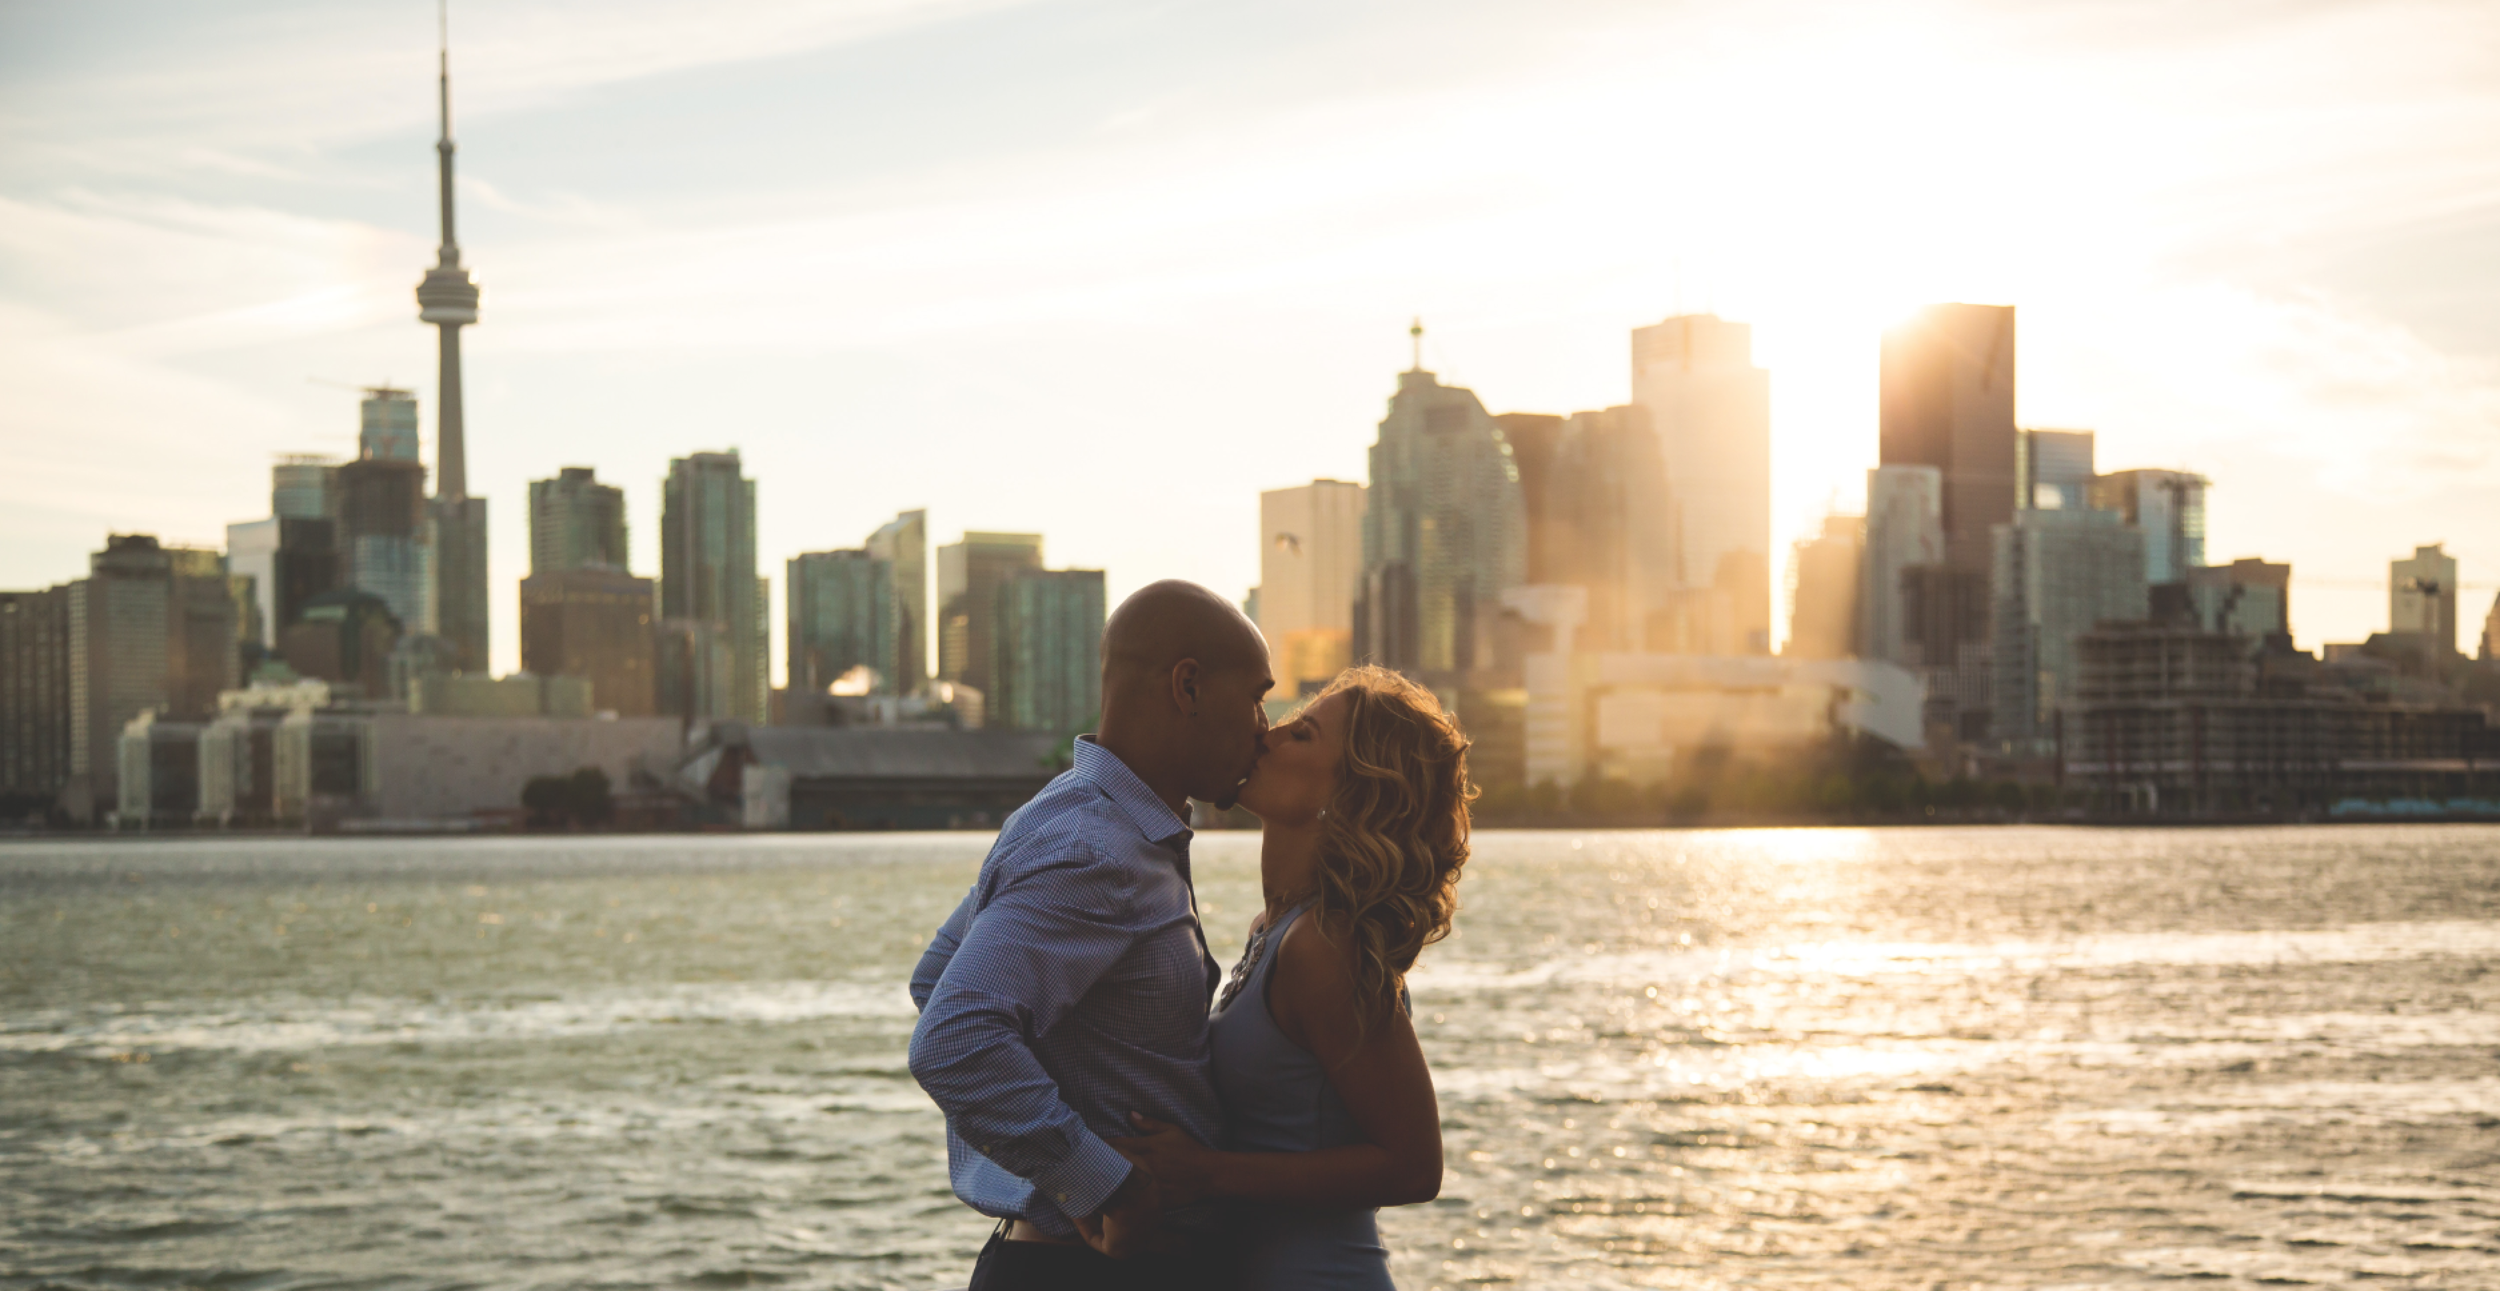 Engagement-Photos-Toronto-Downtown-Waterfront-Photographer-Wedding-Hamilton-GTA-Niagara-Oakville-Modern-Moments-by-Lauren-Engaged-Photography-Photo-Image-14.png